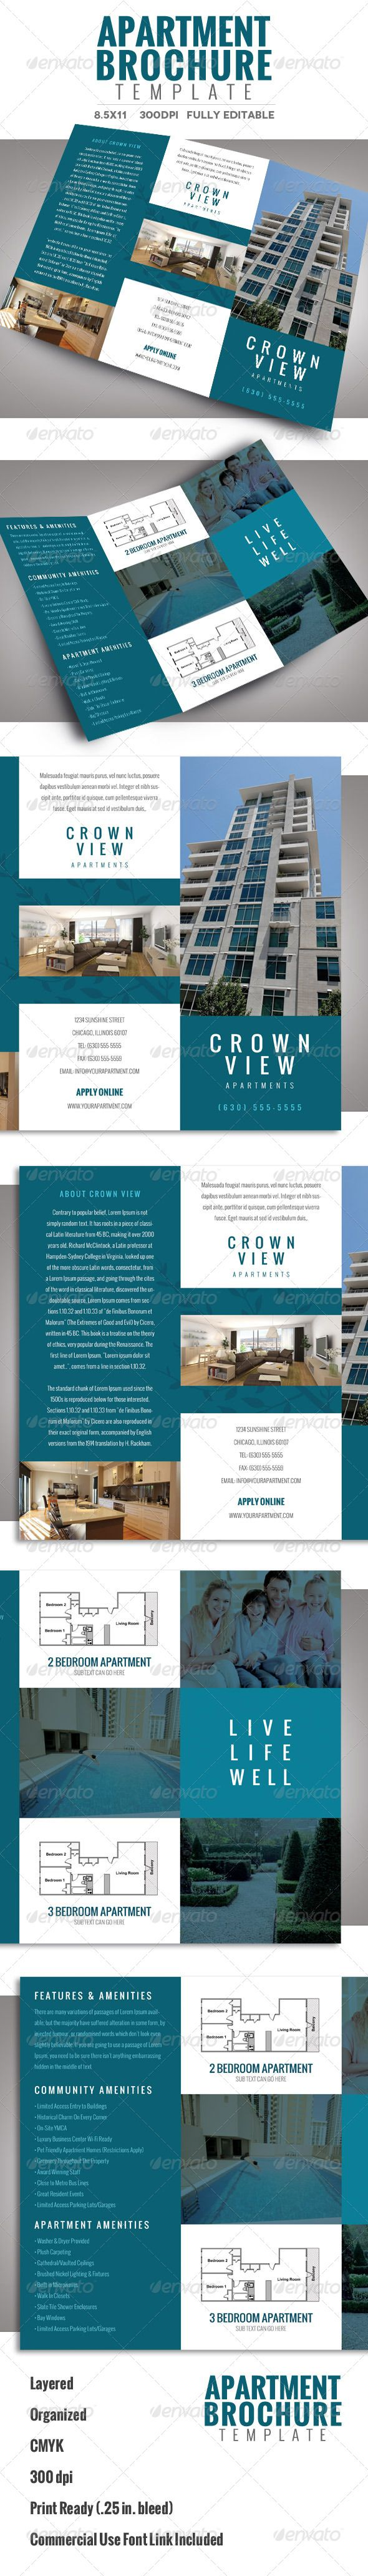 Apartment Brochure Template    http://graphicriver.net/item/apartment-brochure-template-/7995363?ref=damiamio